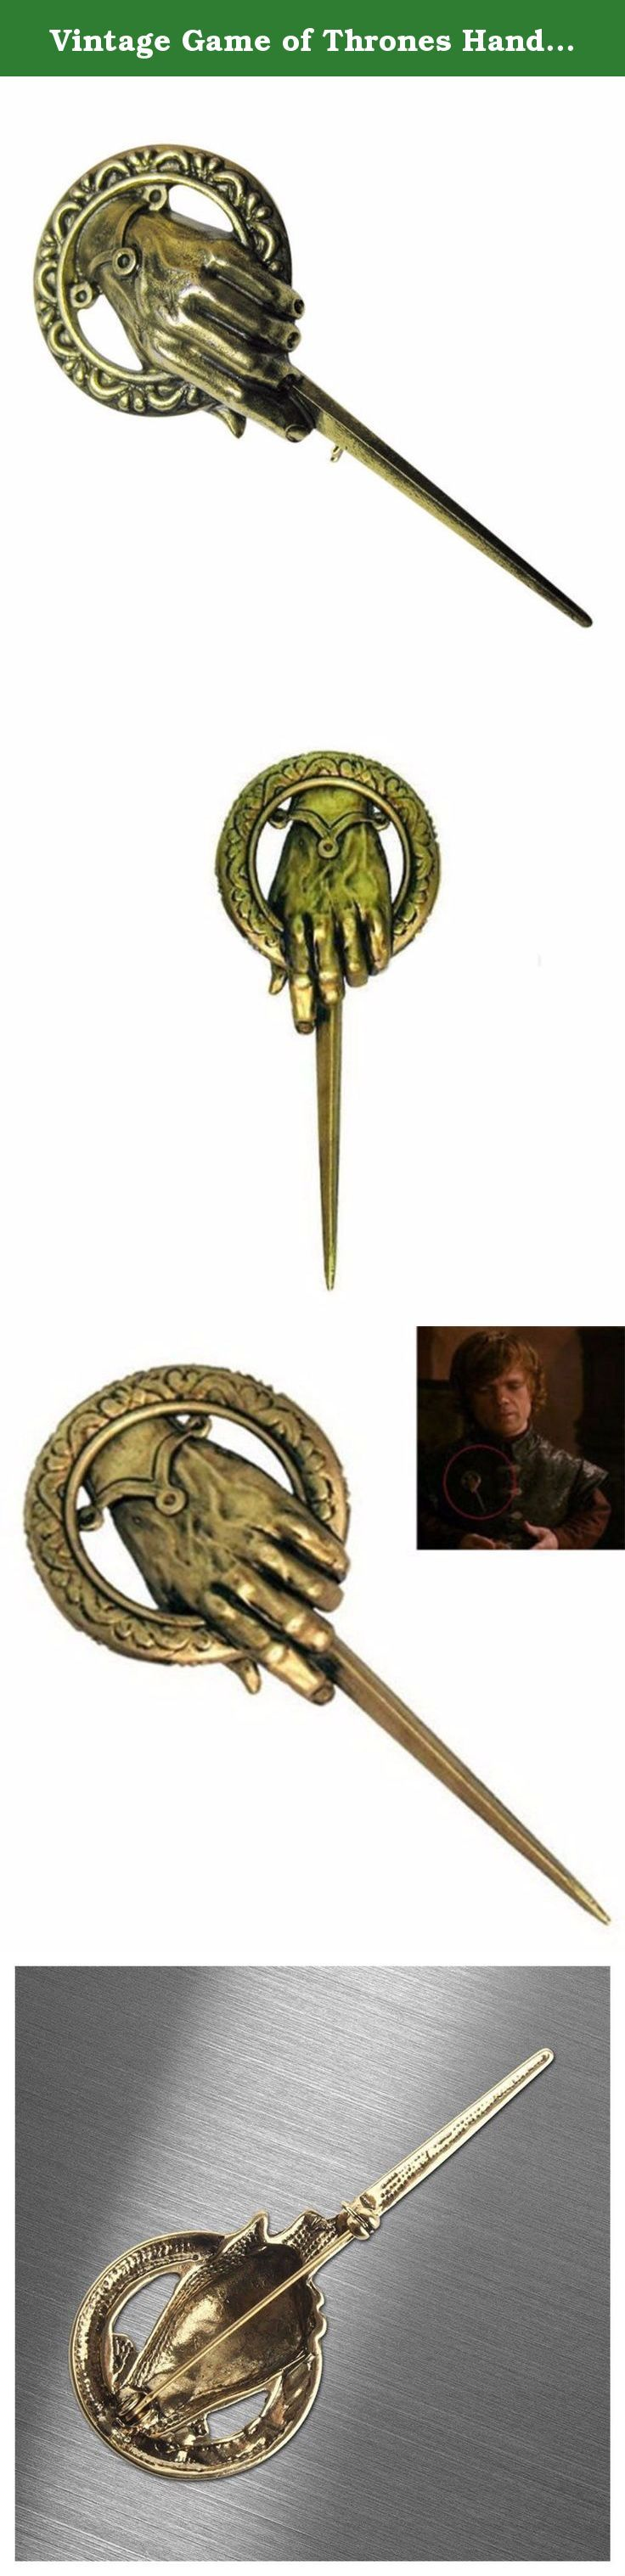 Vintage Game of Thrones Hand of the King Lapel Replica Costume Pin Brooch New. Due to the difference between different monitors, the picture may not reflect the actual color of the item. Thank you!.